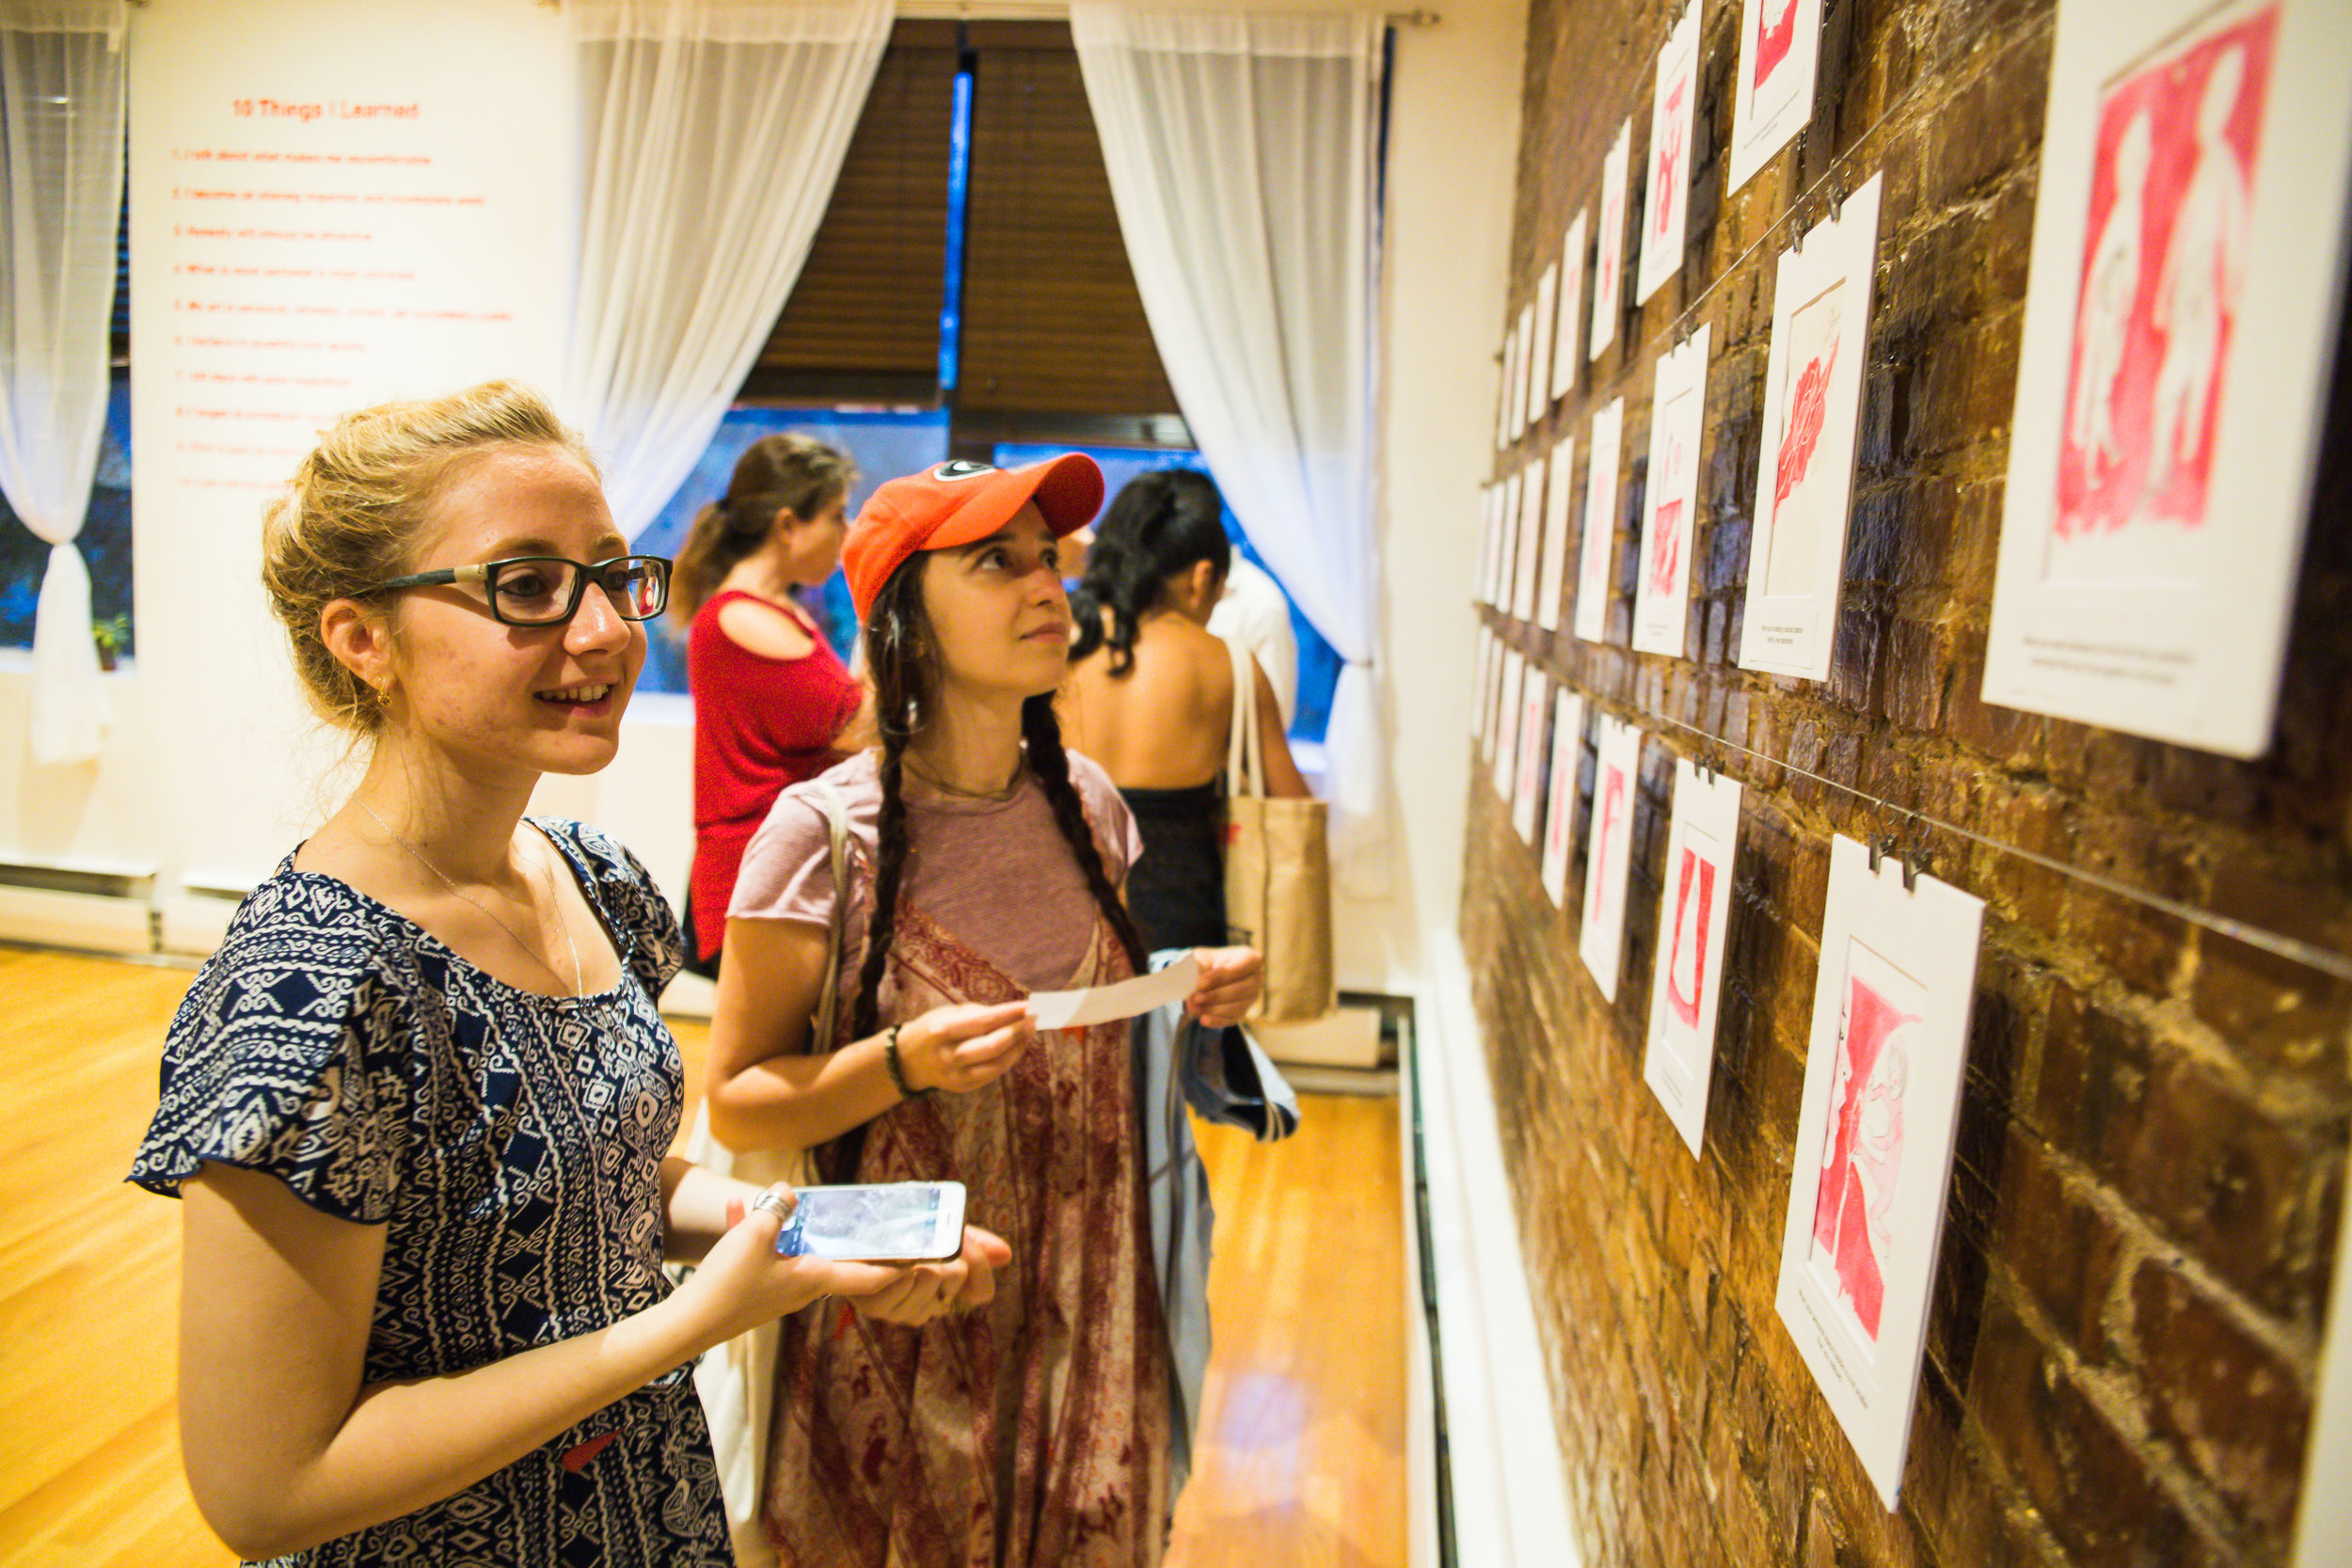 Guests viewing the art and reading each caption.